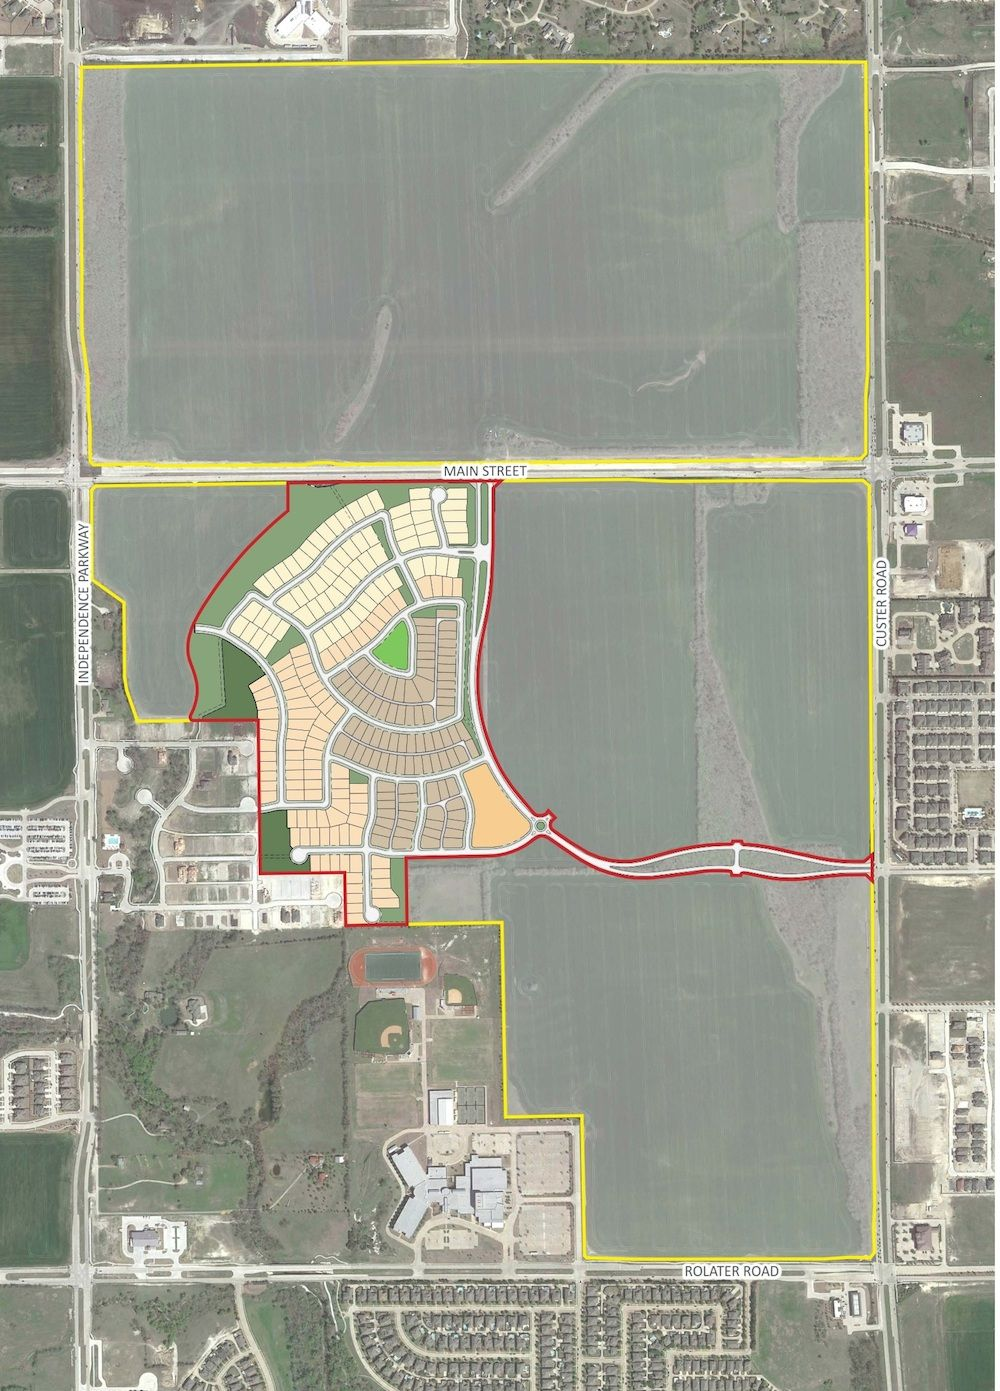 Newland's new Frisco community will be on Main Street west of Custer Road. (Newland)